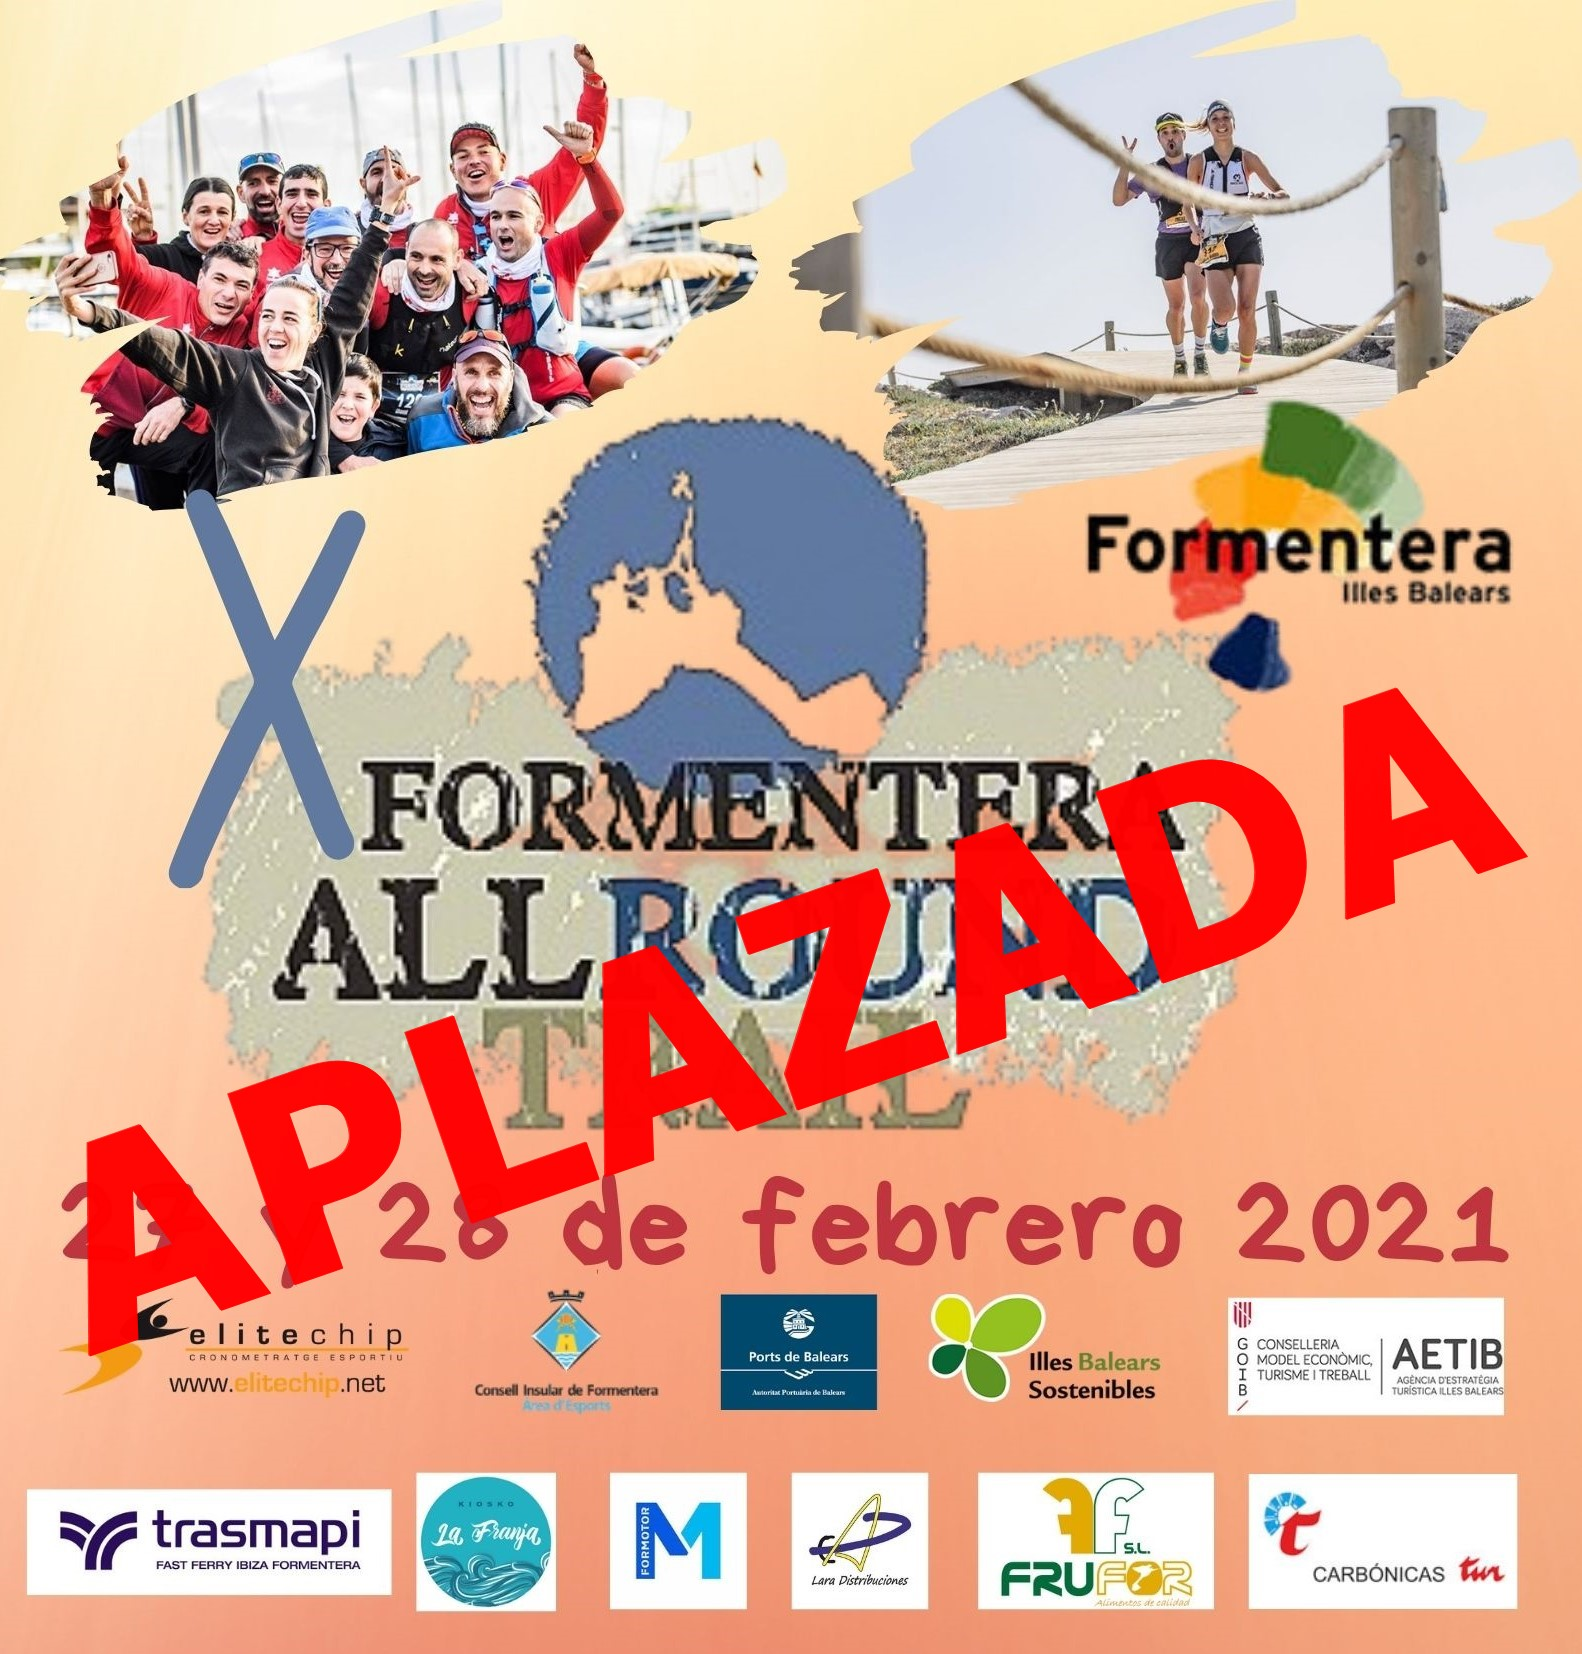 X Formentera All Round Trail 2021